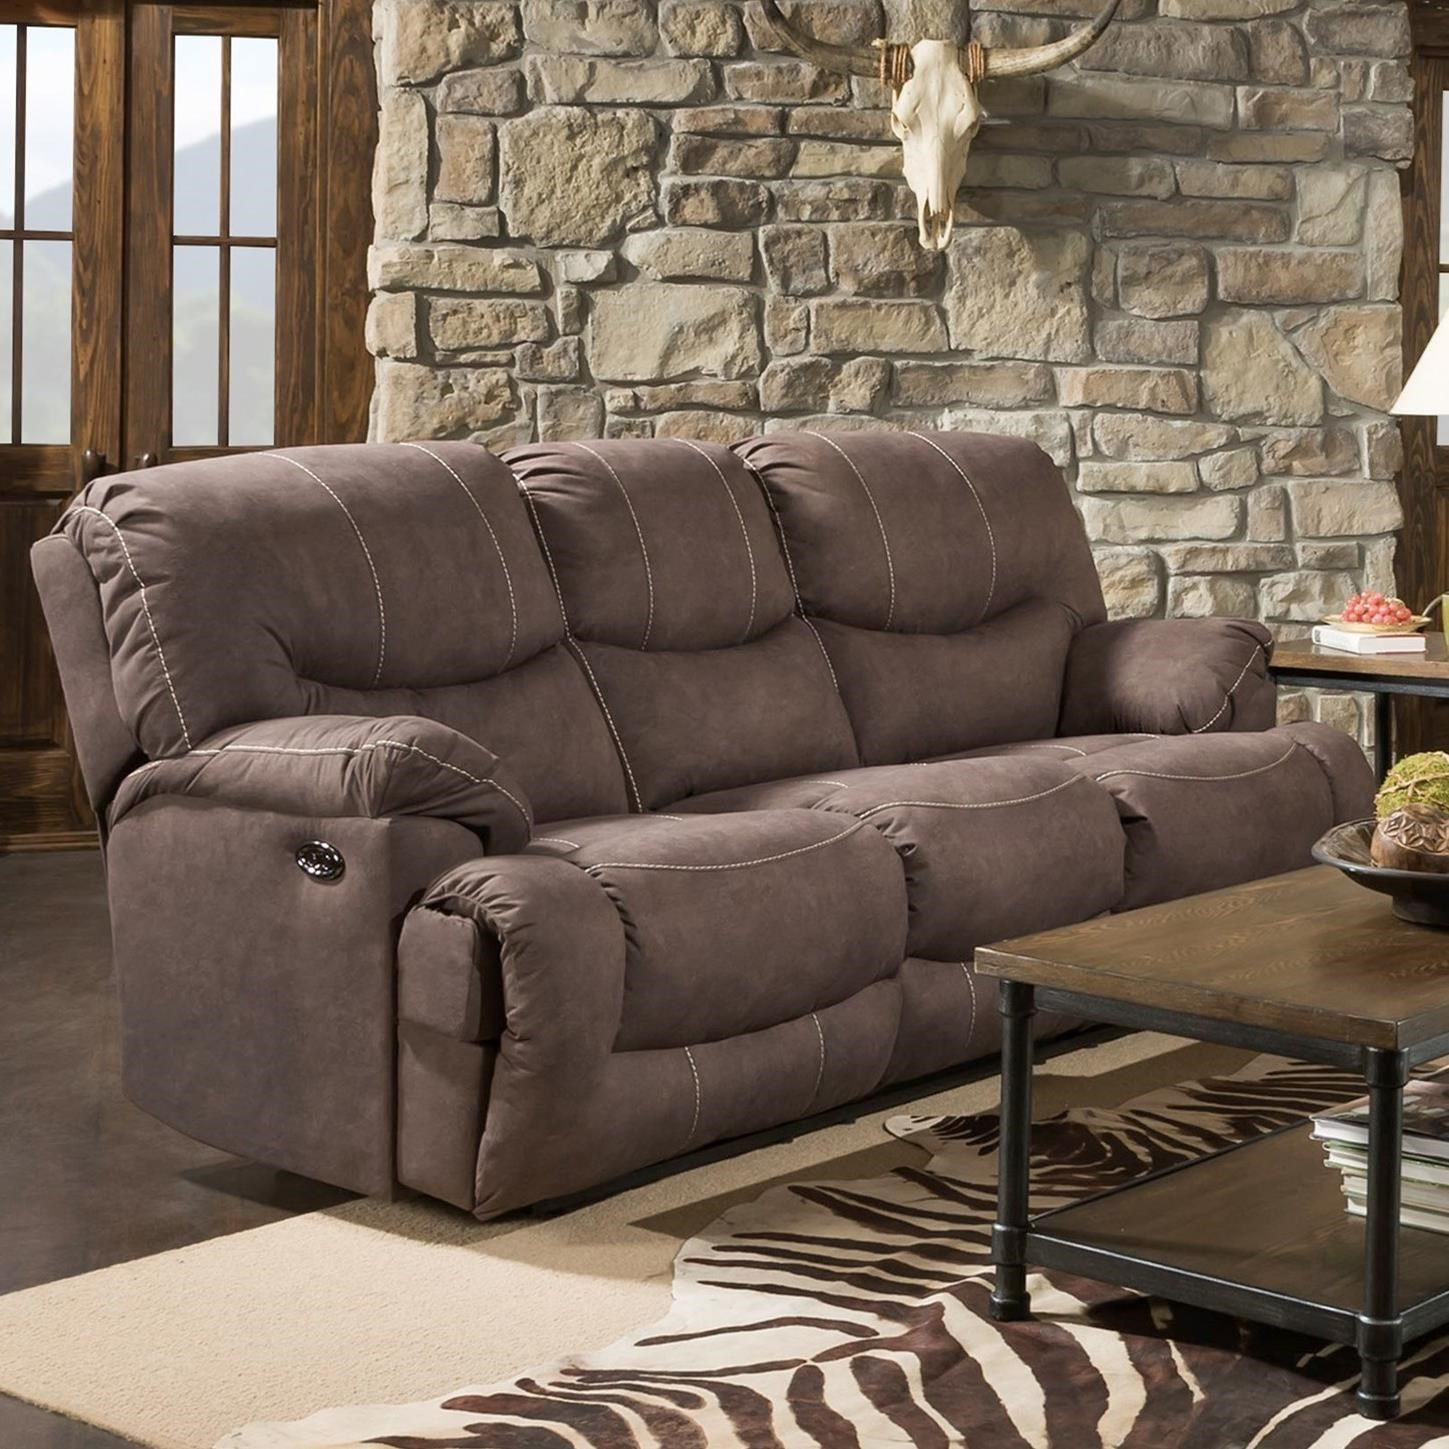 50455BR Double Reclining Sofa by United Furniture Industries at Bullard Furniture